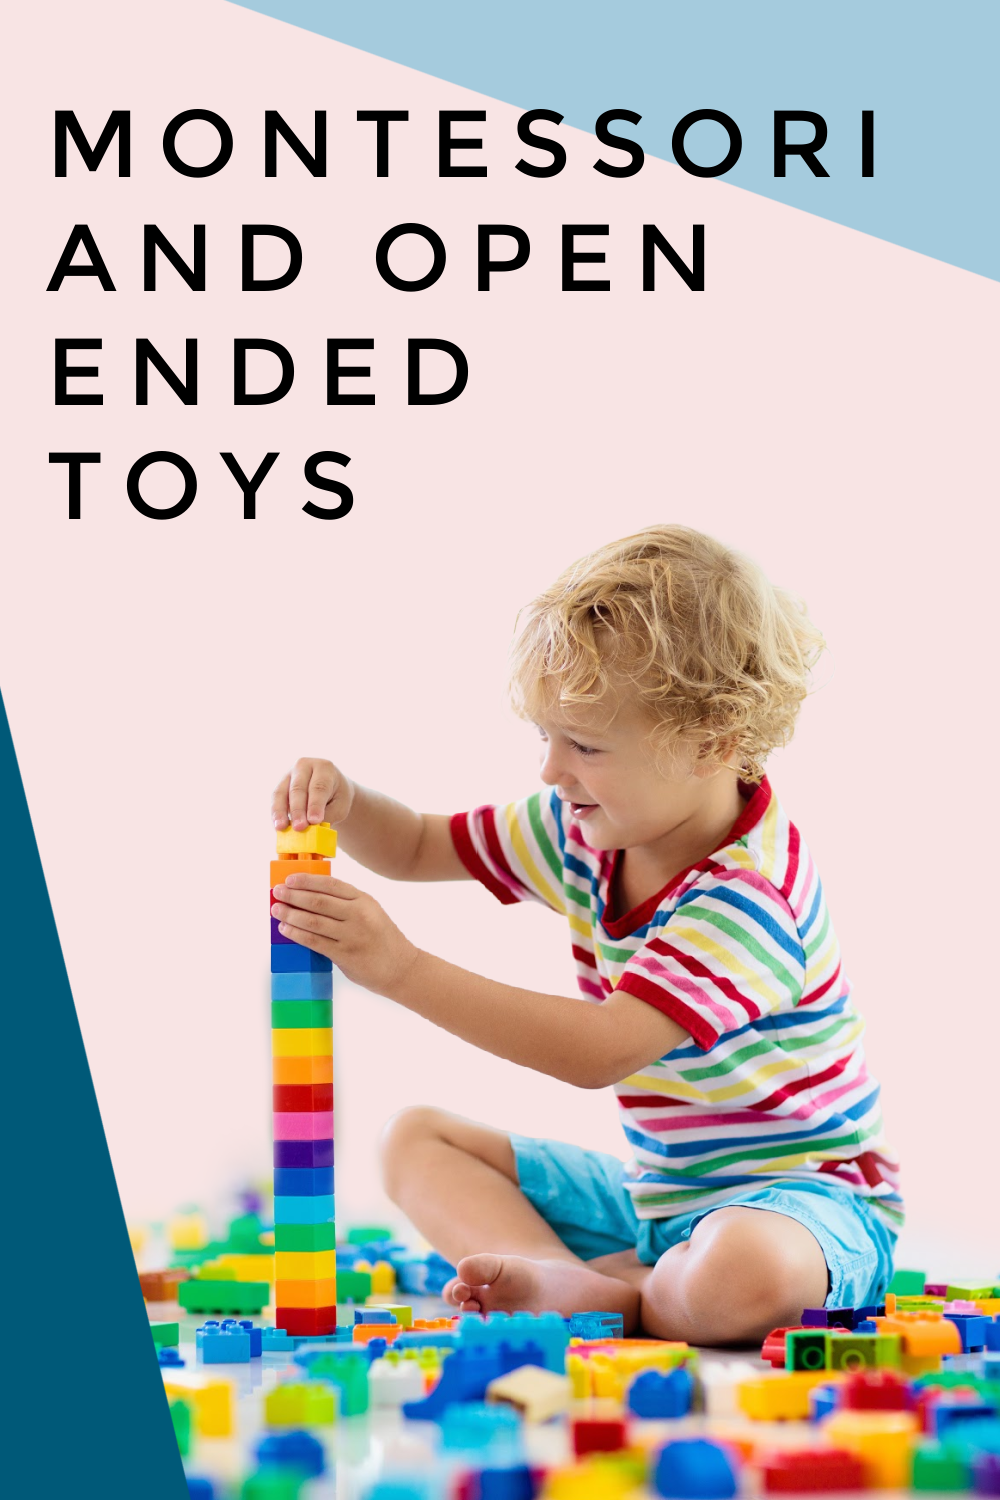 In this Montessori parenting podcast we discuss pretend play and open ended toys in our Montessori homes.